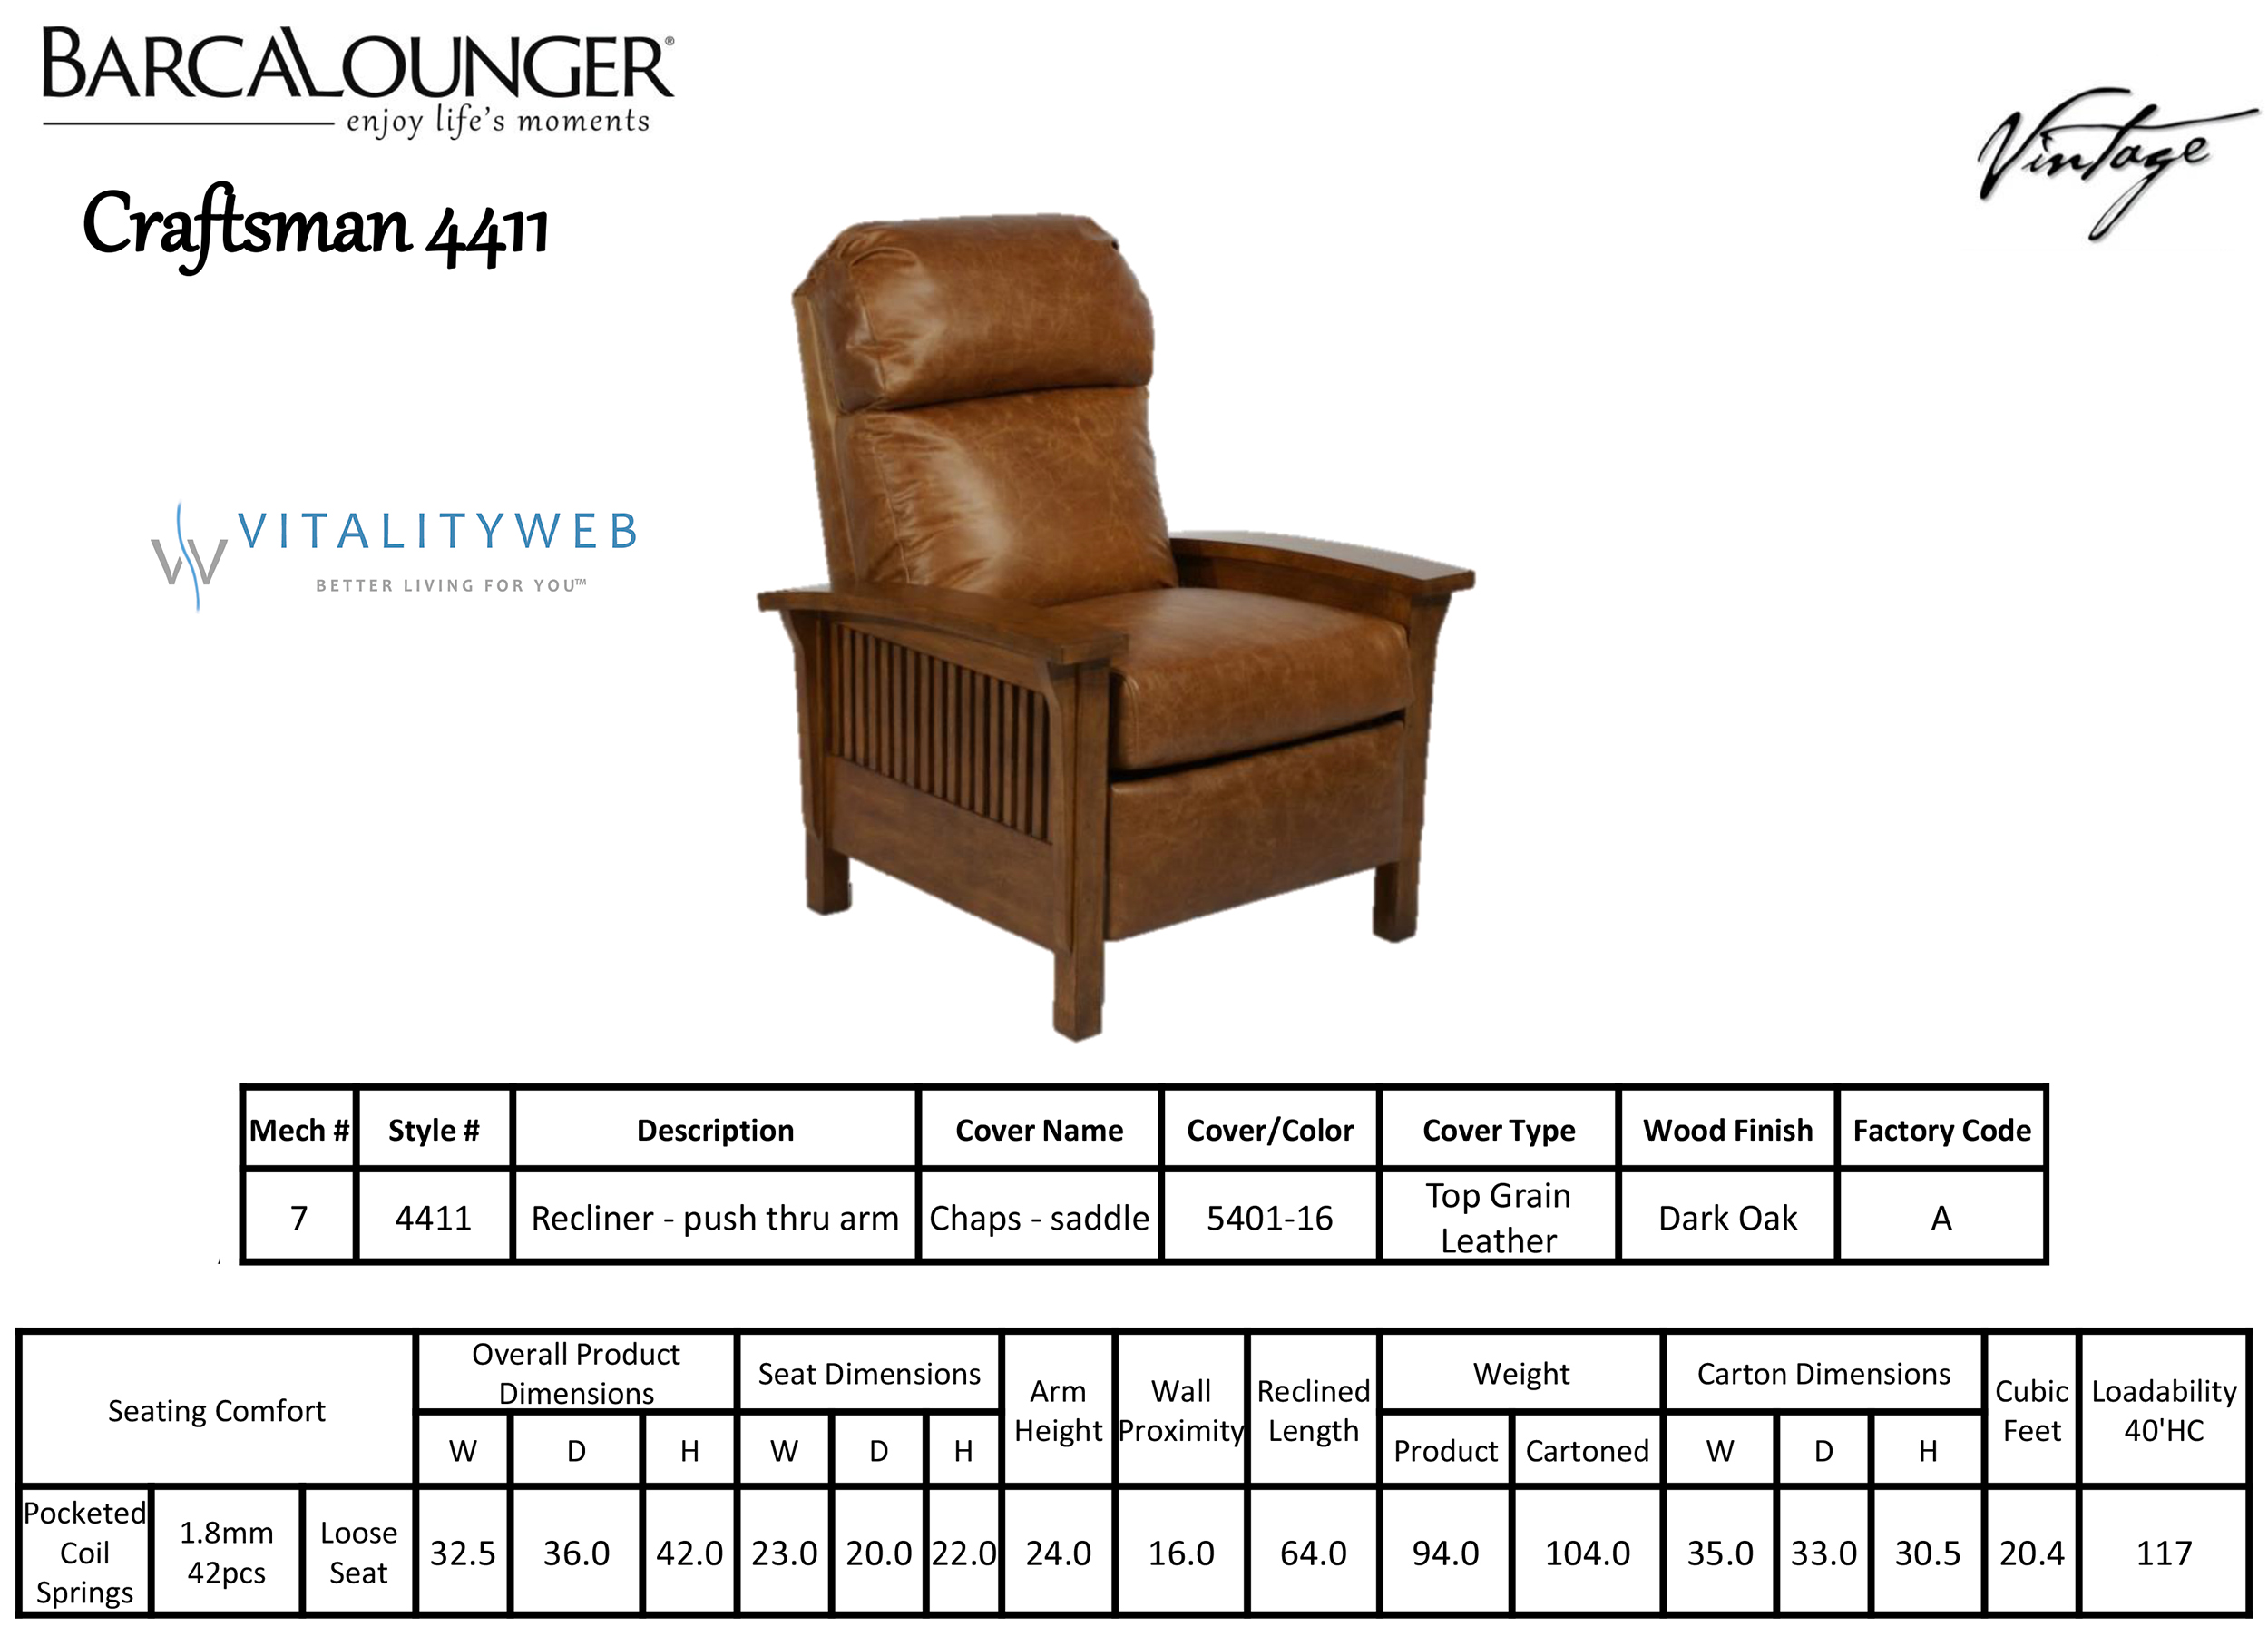 upholstery cleaning s for sofas wesley hall sectional sofa barcalounger craftsman ii recliner chair - leather ...